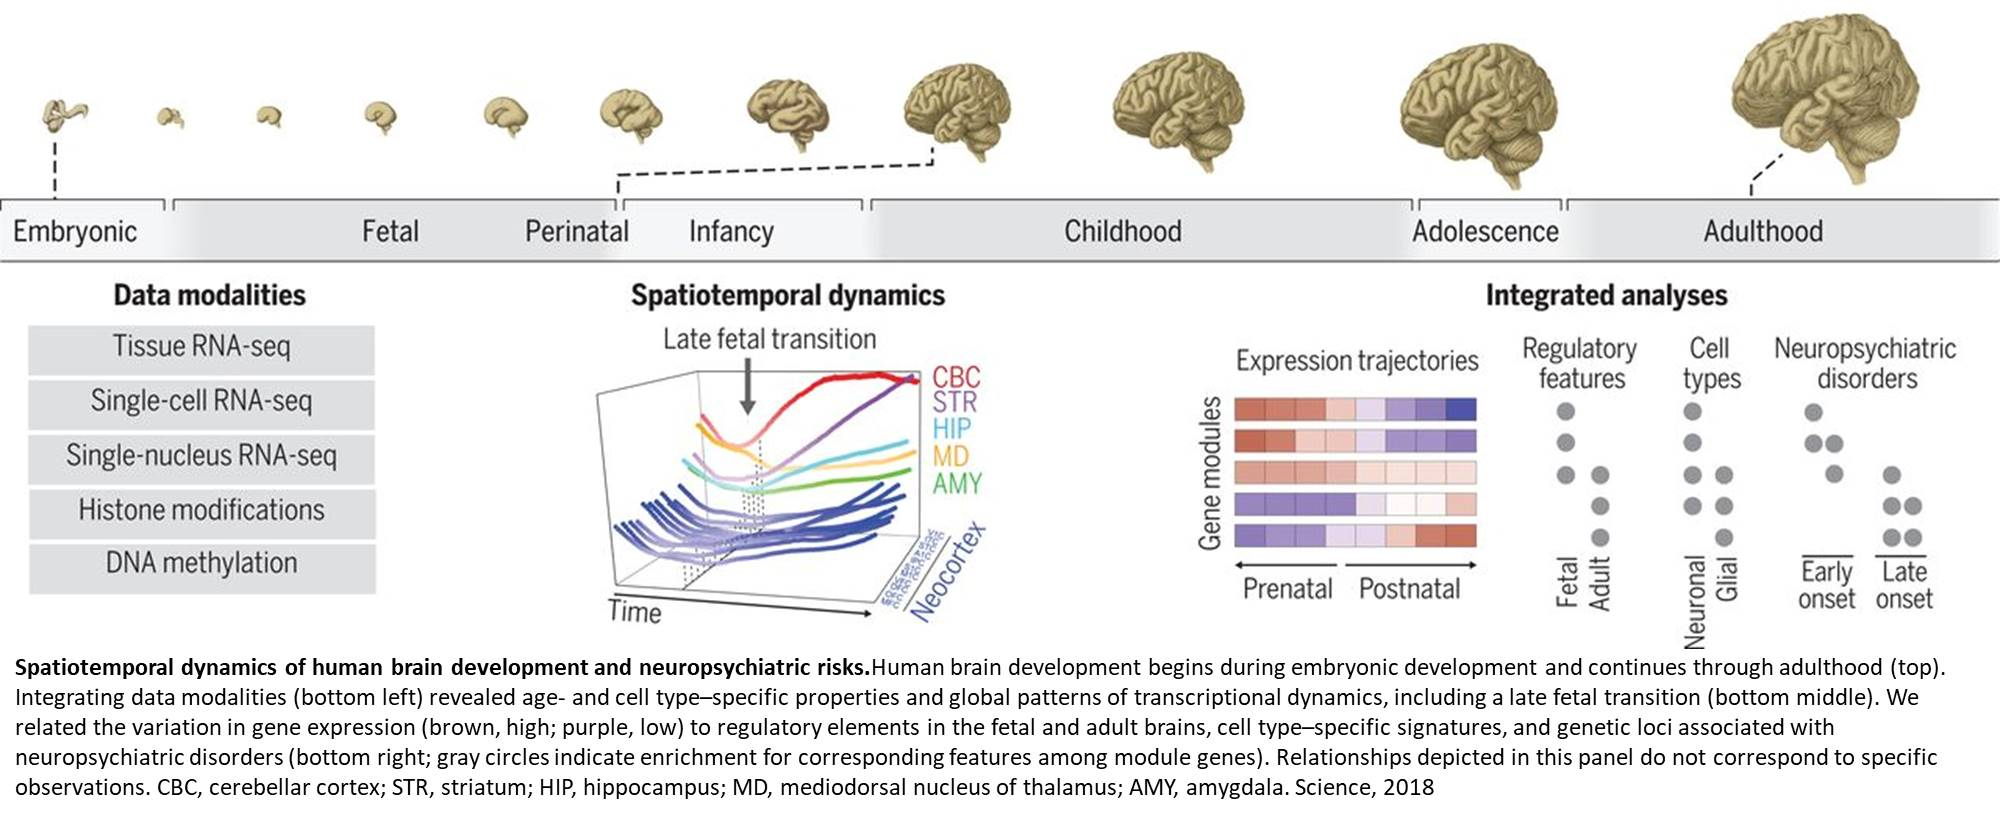 Roots of neuropsychiatric diseases found in the developing brain